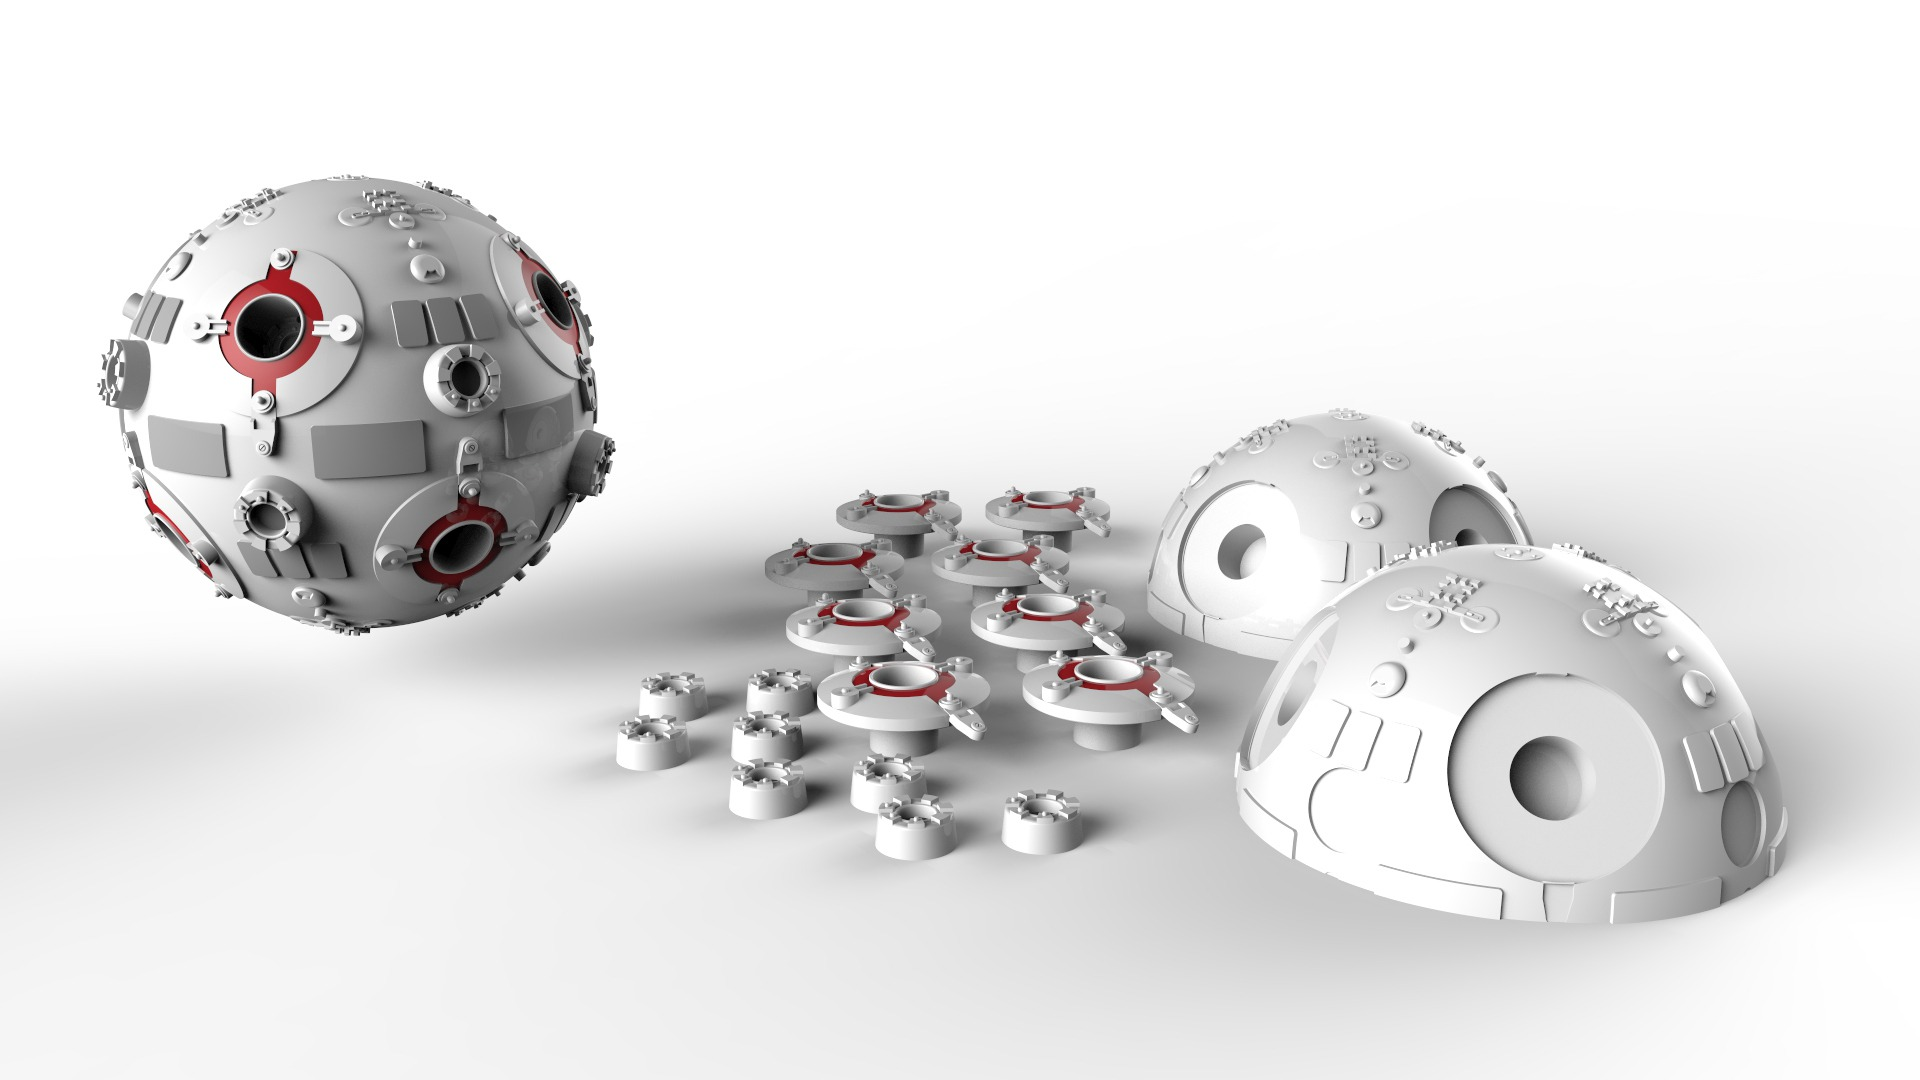 star-wars-remote-training-droid-3d-model-01